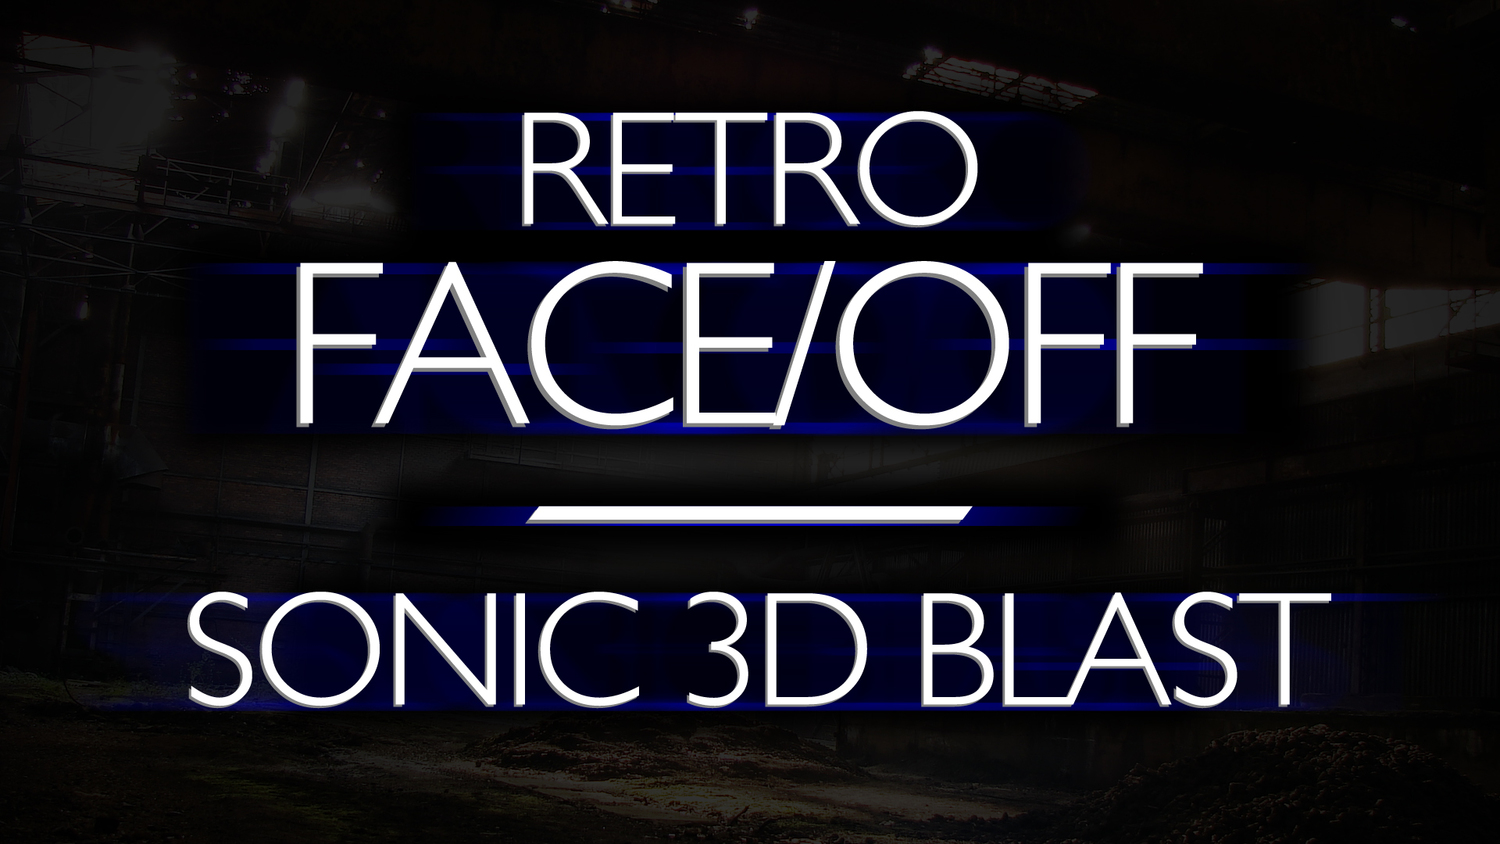 Sonic 3D Blast — Watch — IMPLANTgames